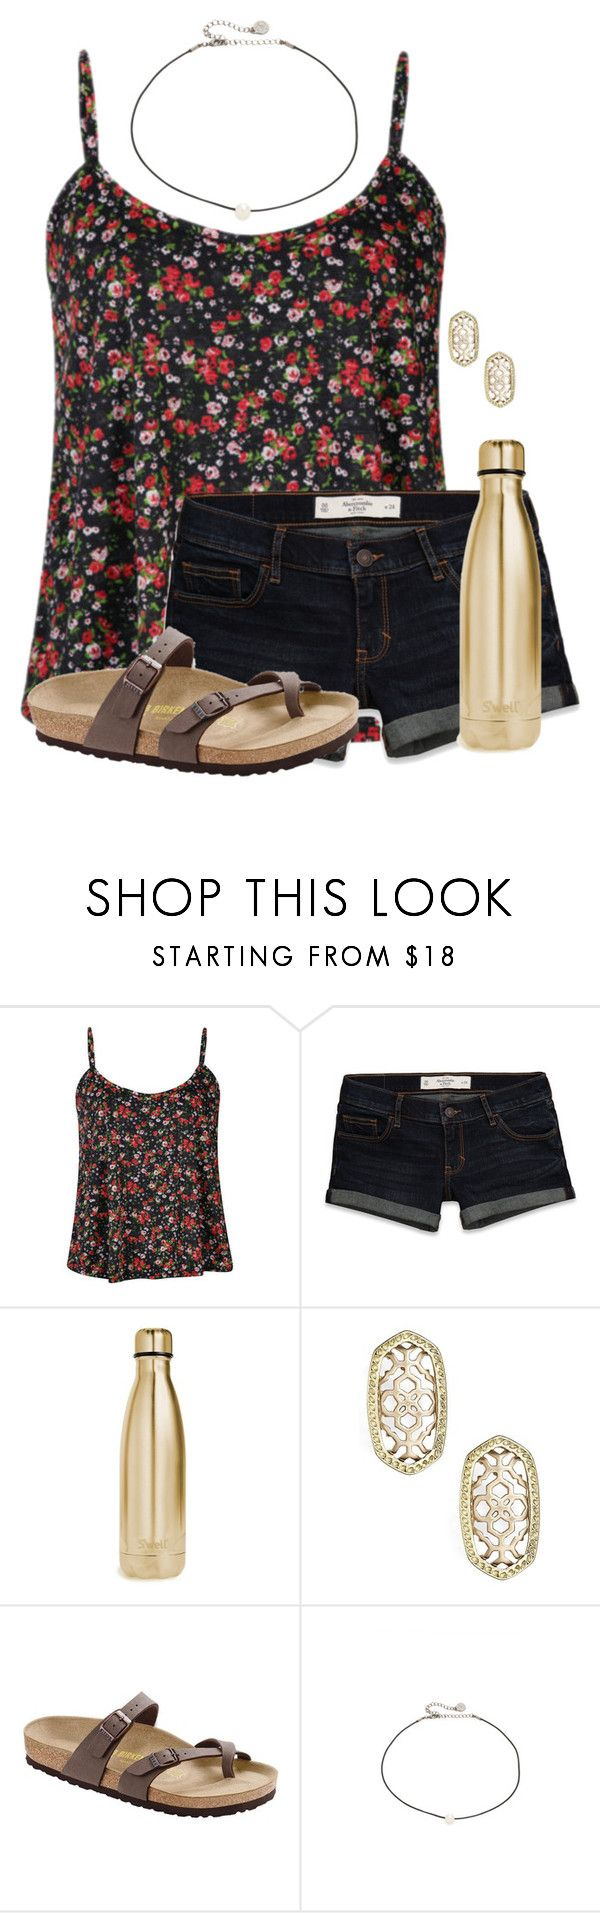 """""""Tennis bus ride is LIT"""" by auburnlady ❤ liked on Polyvore featuring Influence, Abercrombie & Fitch, S'well, Kendra Scott, Birkenstock and Cloverpost"""